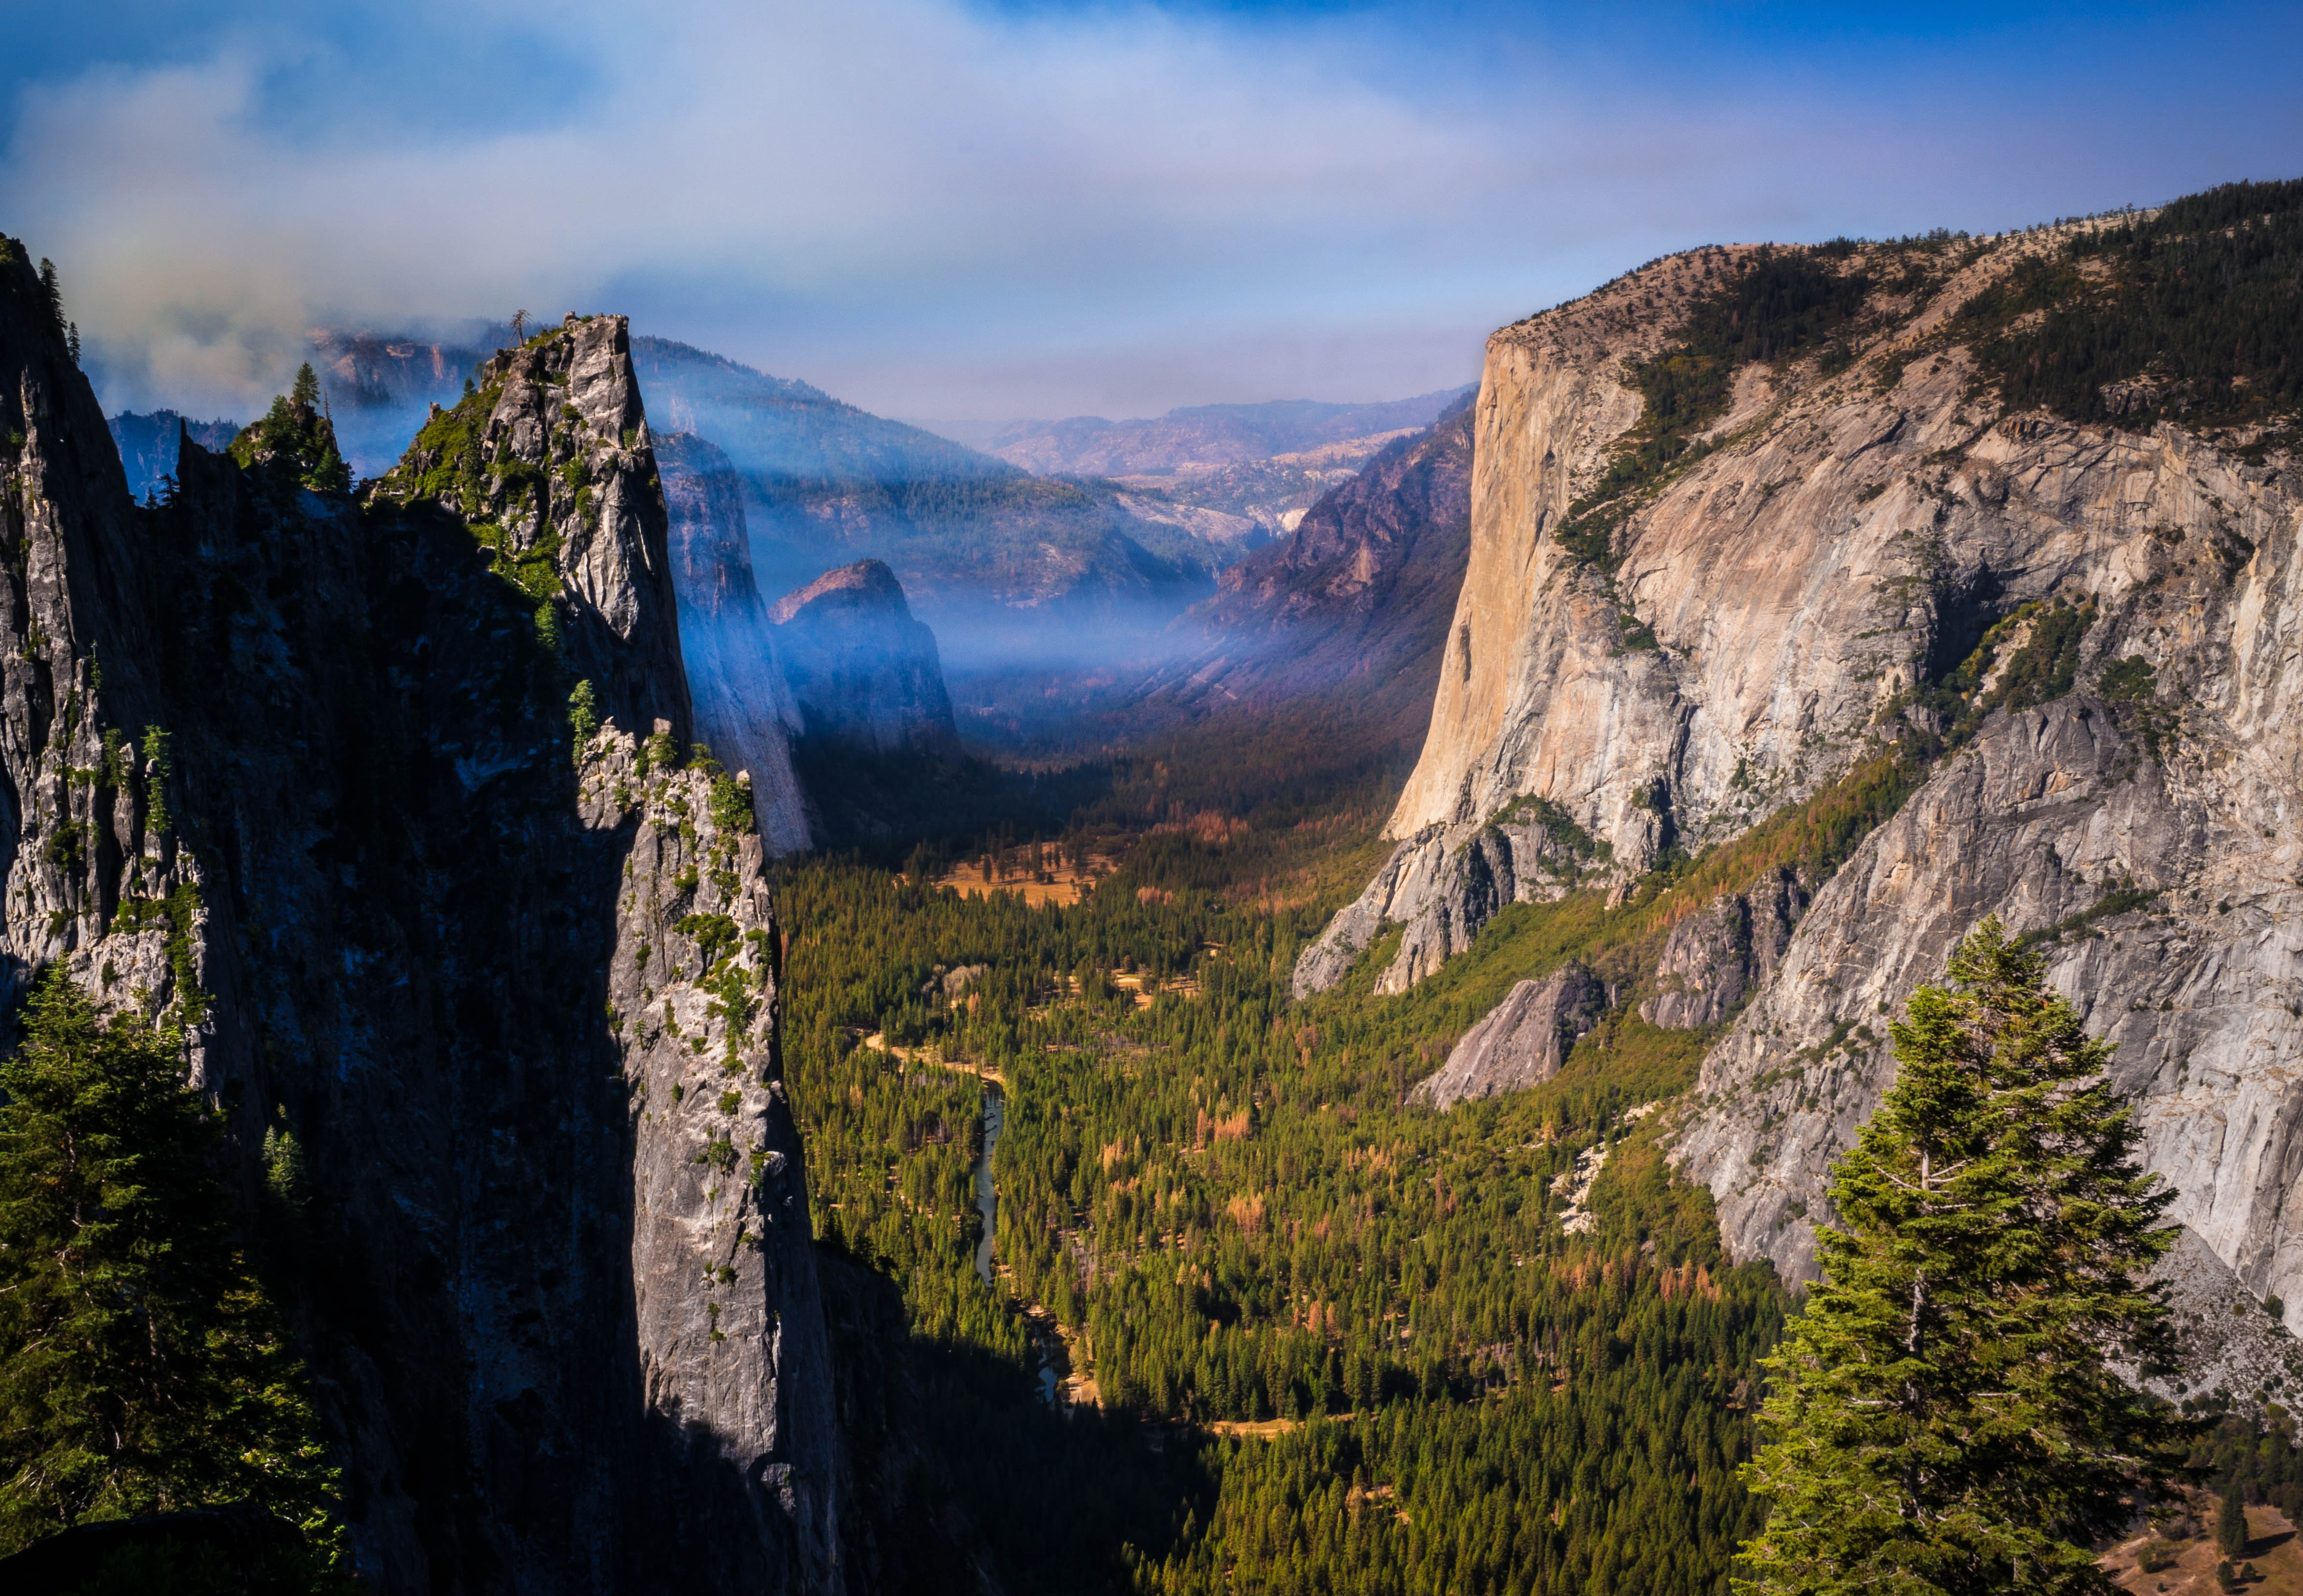 A high view of the high cliffs and the wooded bottom in Yosemite Valley